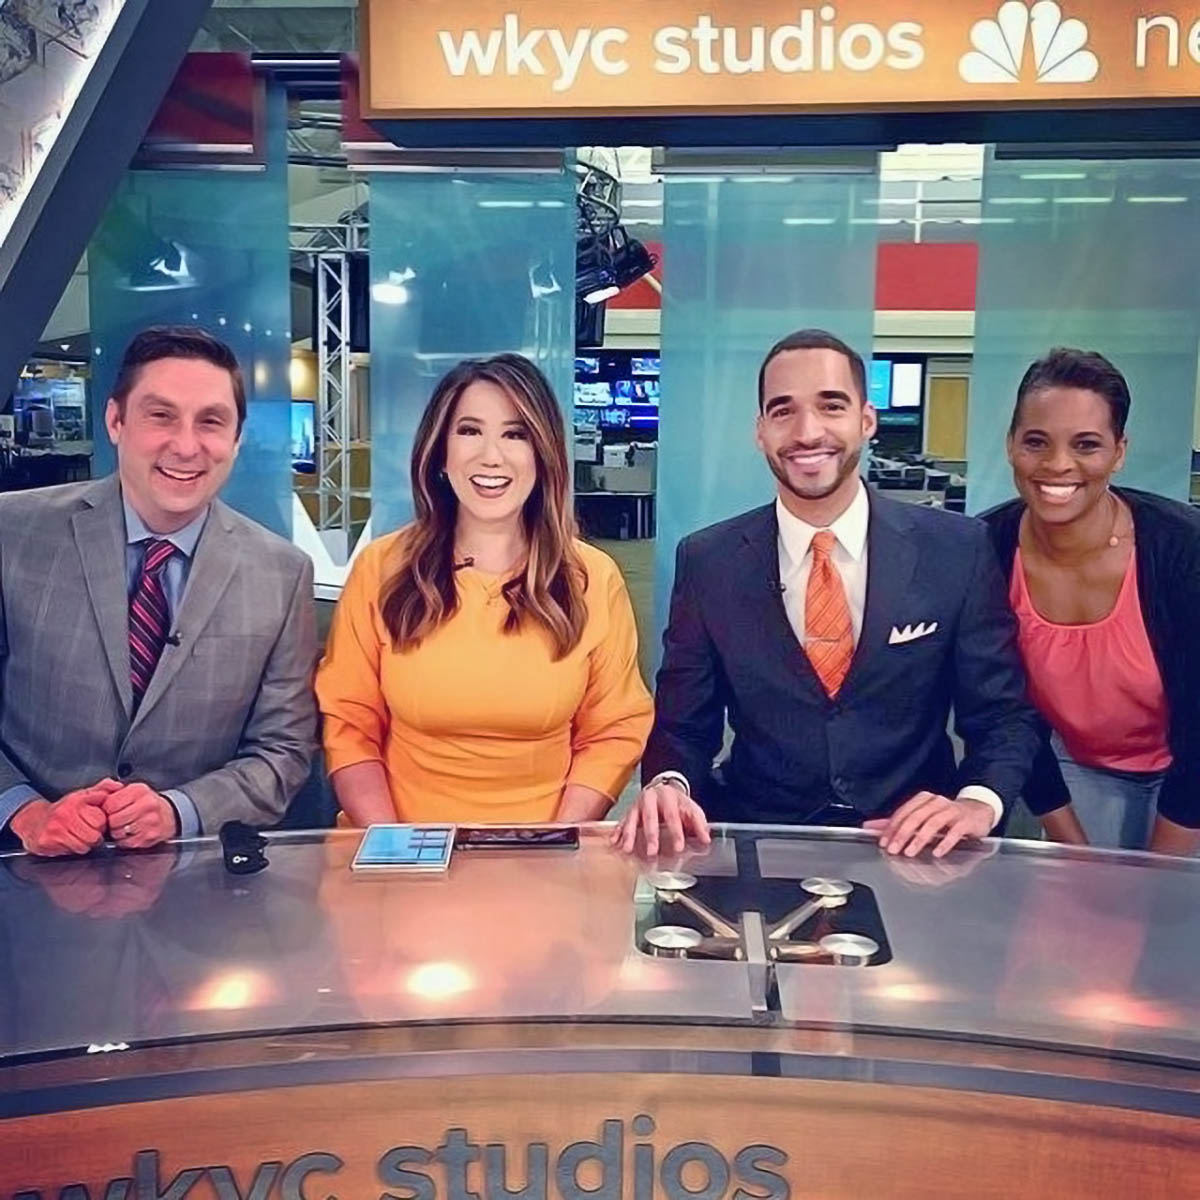 WKYC News anchors at channel studio